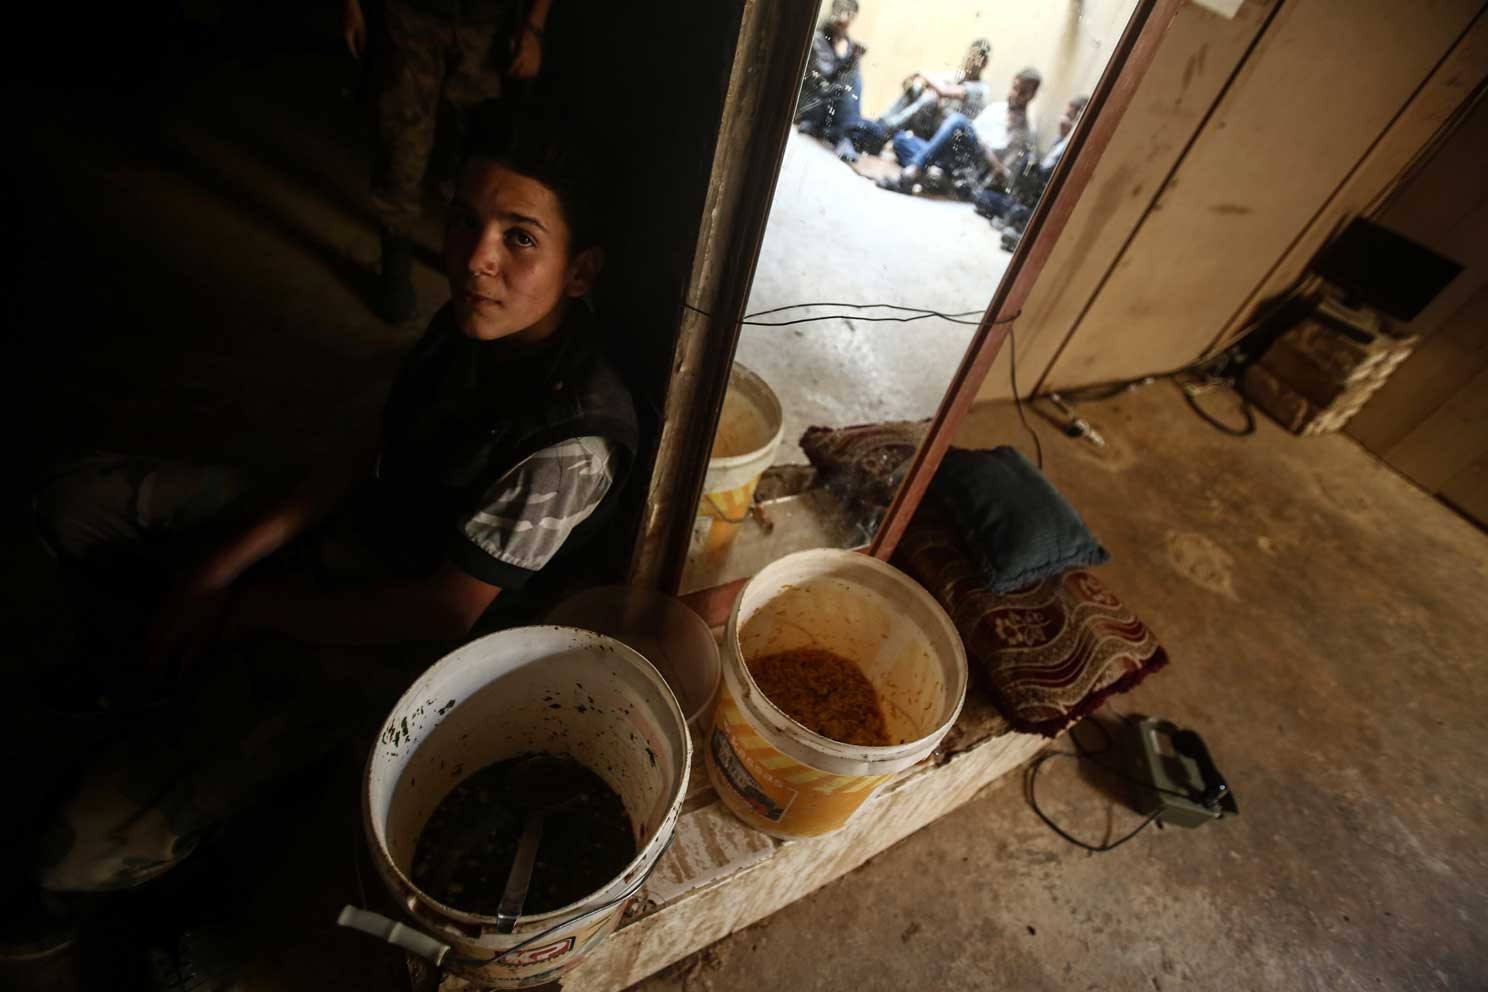 A Syrian fighter sits next to two food containers and a mirror in Douma, Syria July 28. Pope Francis said Aug. 7 that innocent men, women and children are paying the ultimate price in the continuing conflict raging in Syria. (CNS photo/Mohammed Badra, EPA)